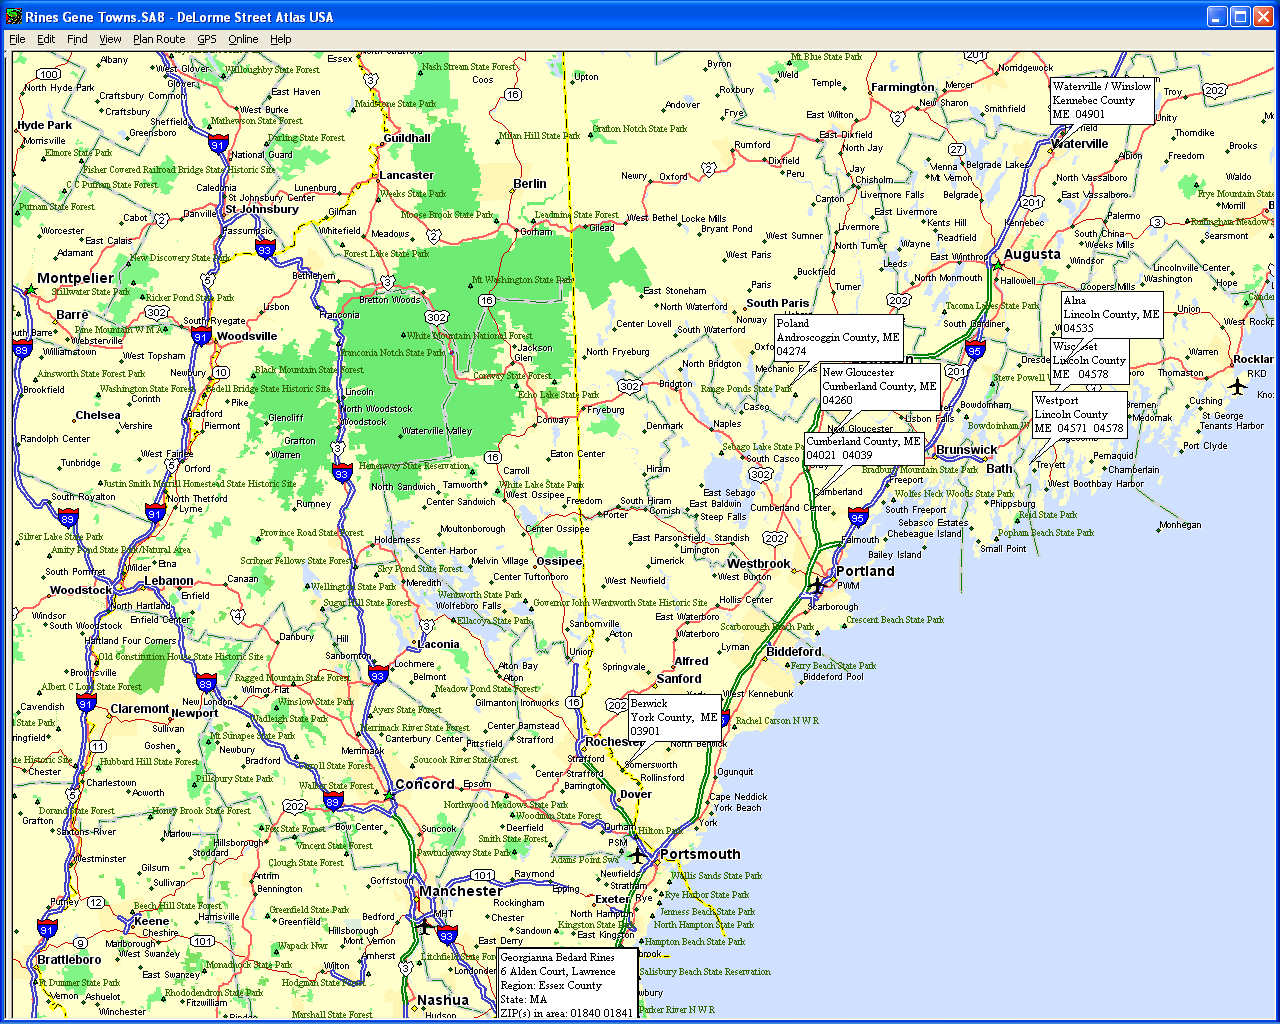 Brilliant Map Of Maine Towns And Cities Swimnovacom - Maine towns map